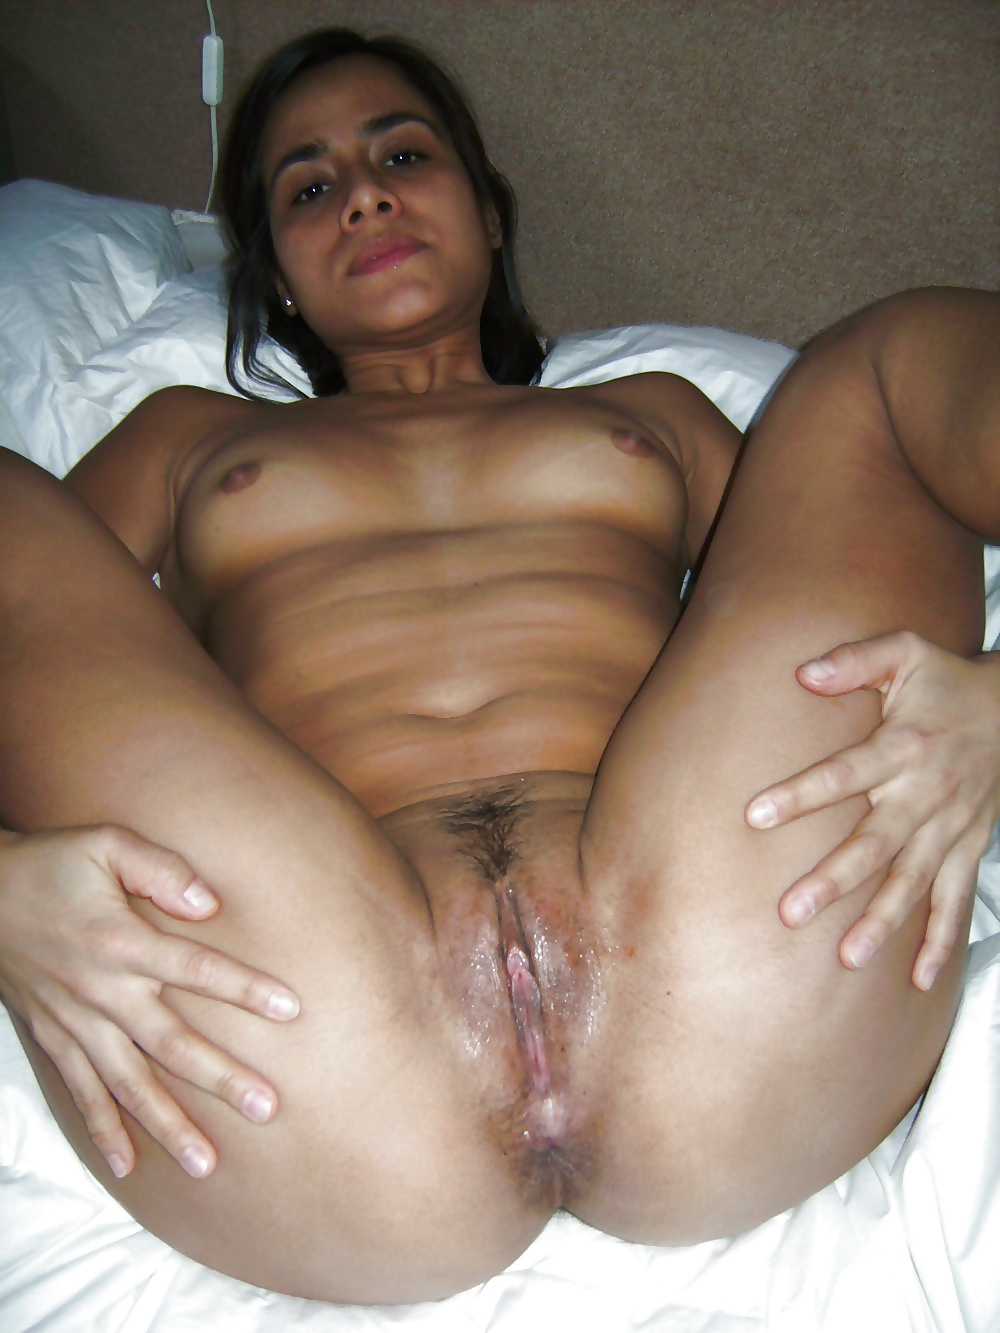 Skinny girl indian young girl wet vagina pic porn asian